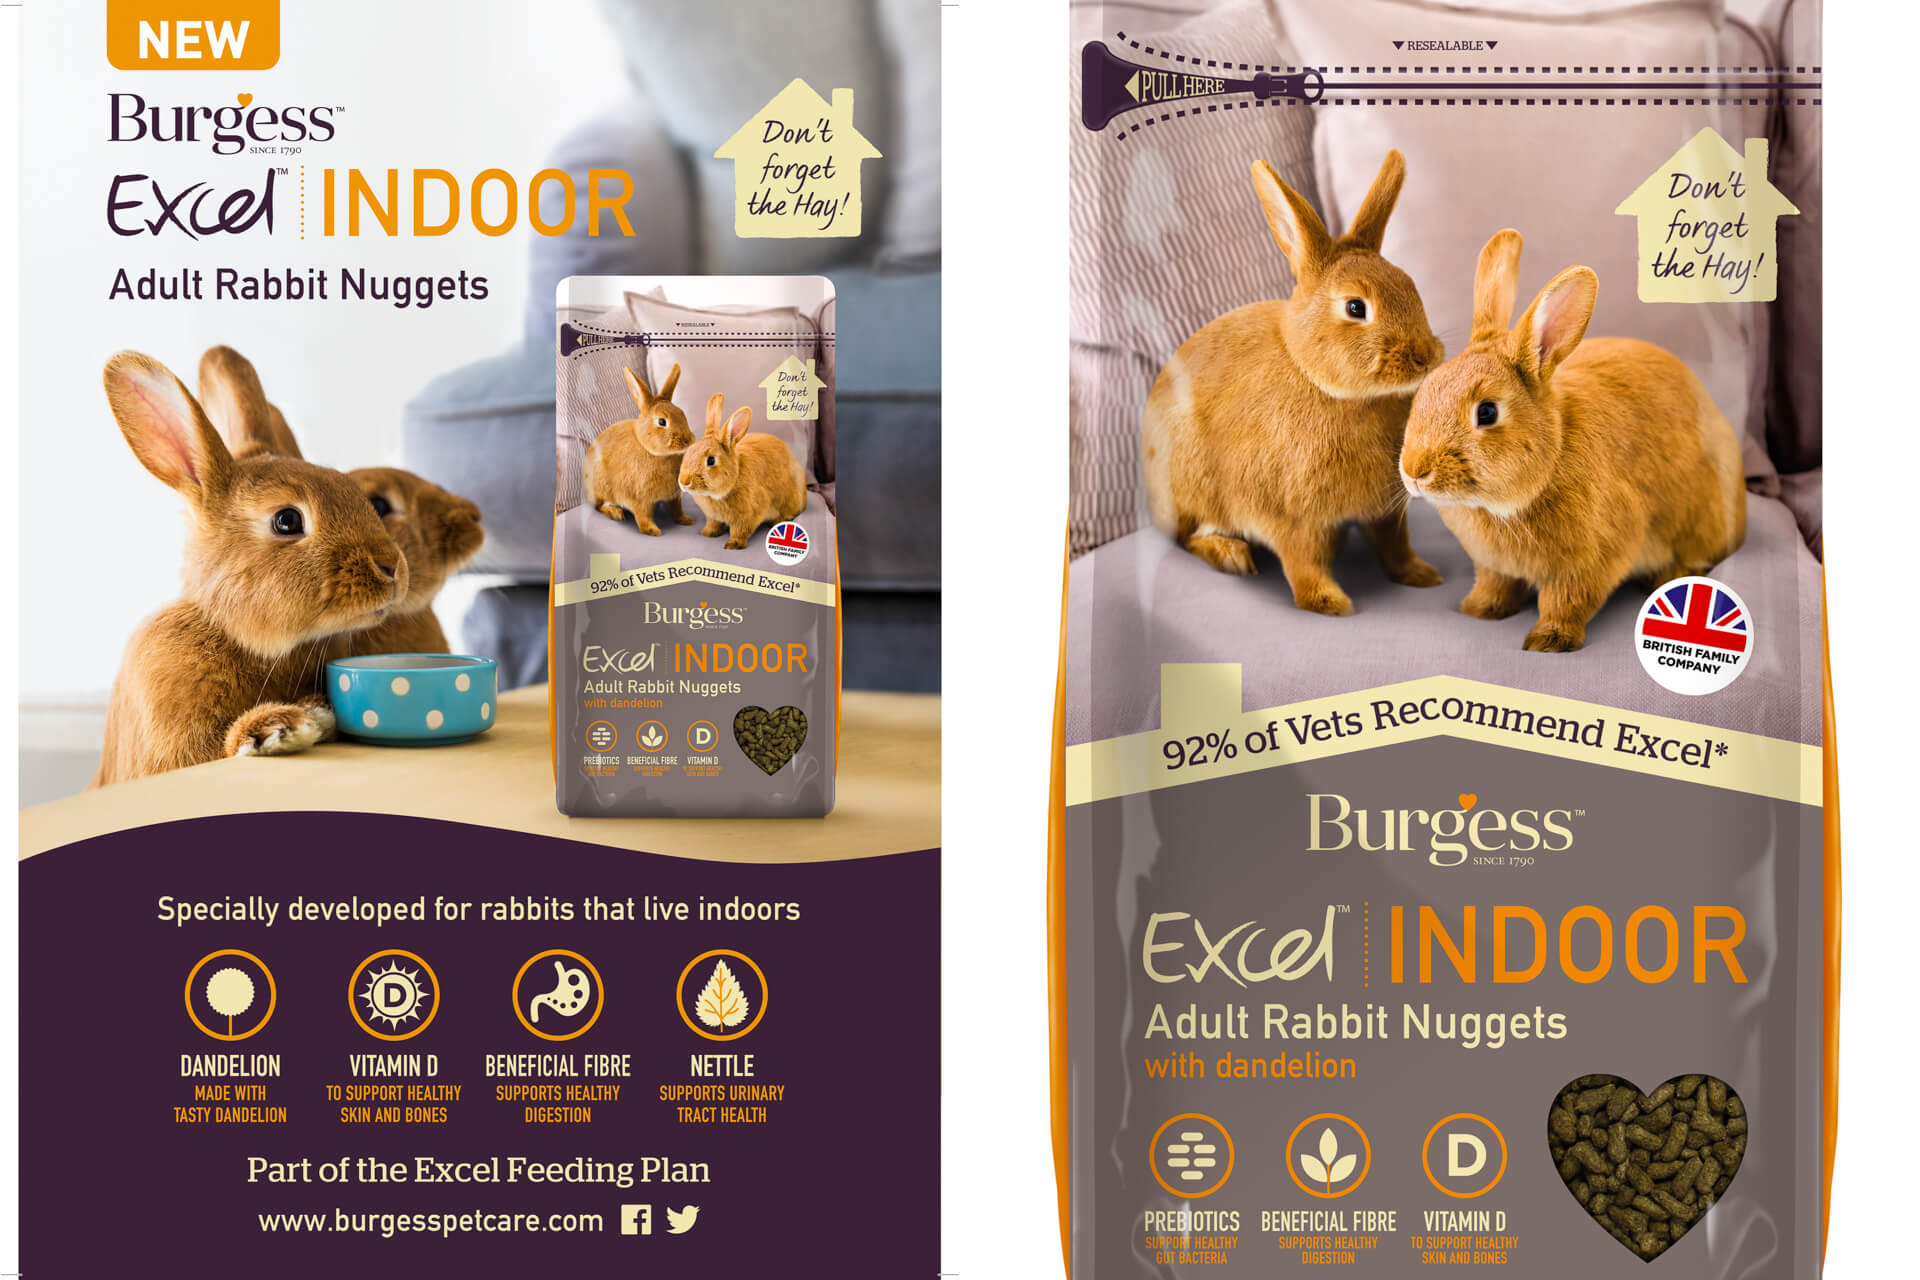 packaging for burgess pet food showing rabbit images